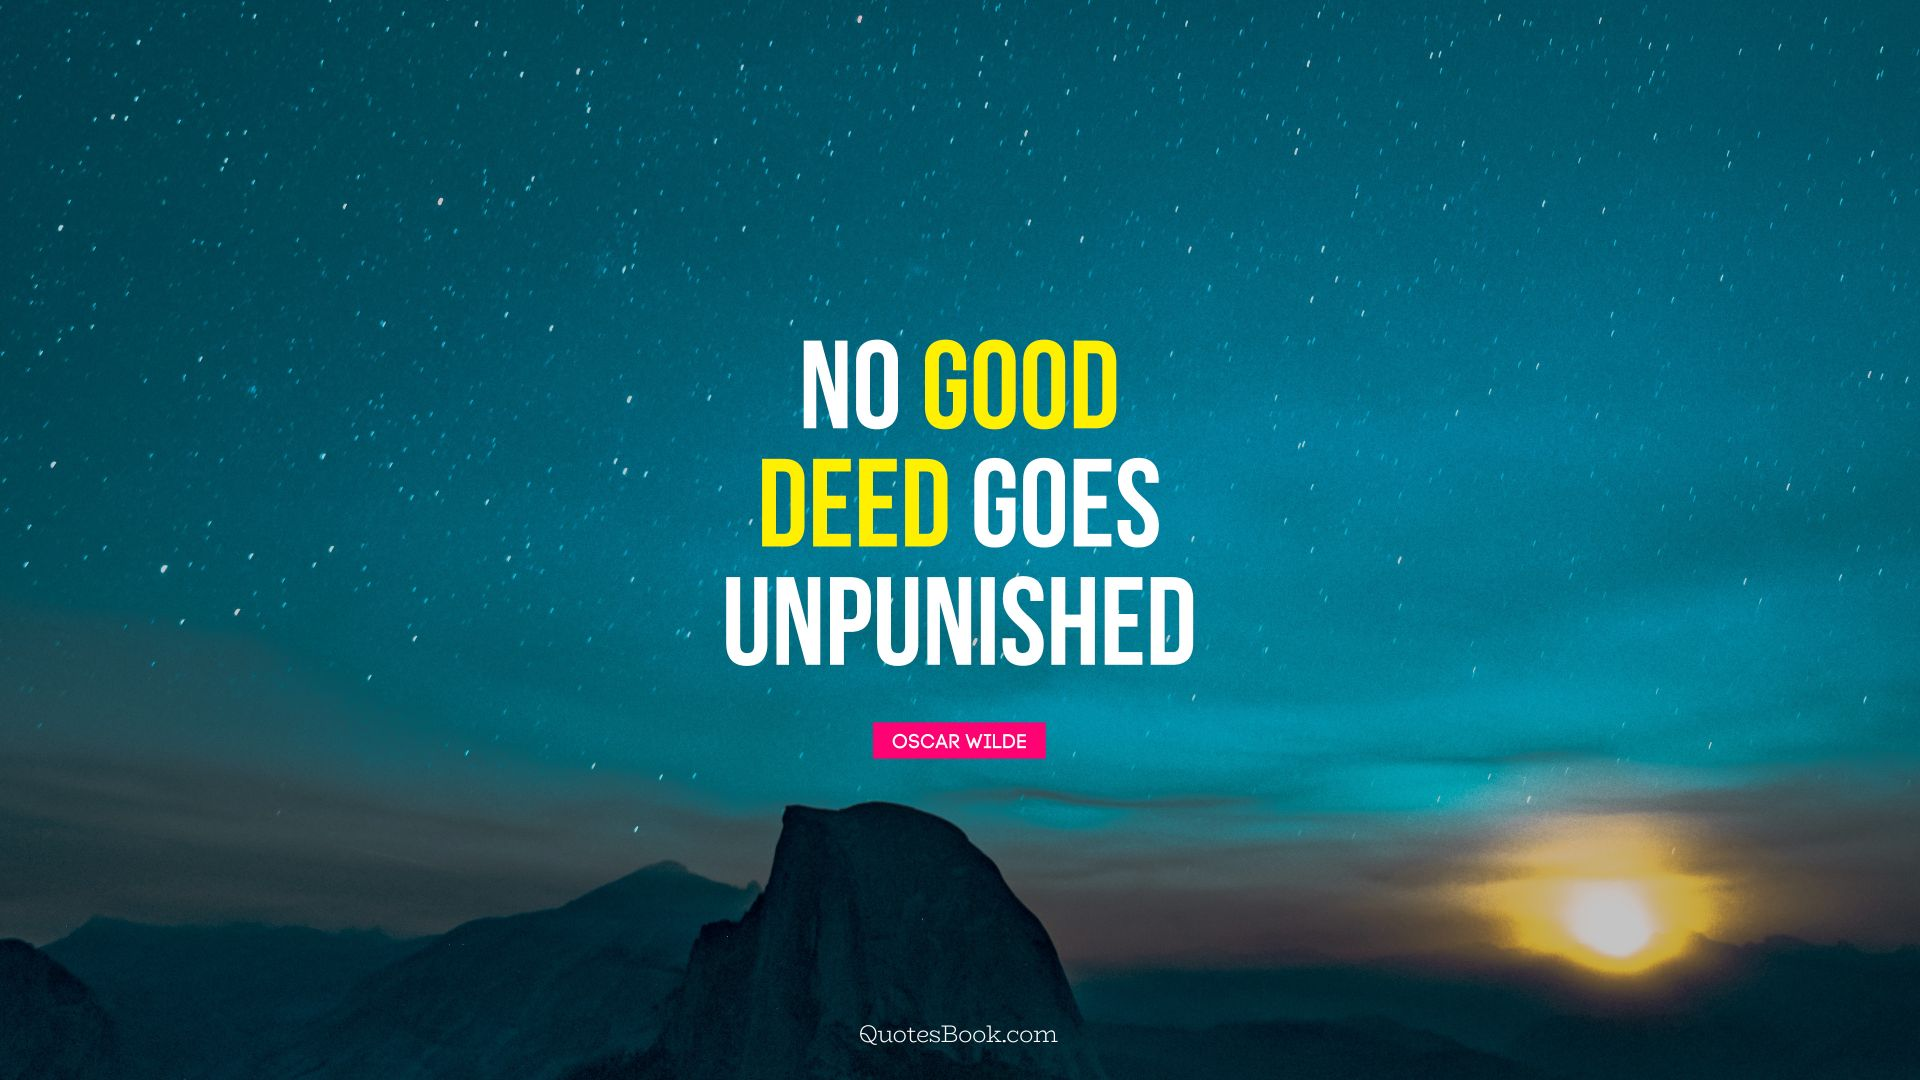 No good deed goes unpunished. - Quote by Oscar Wilde